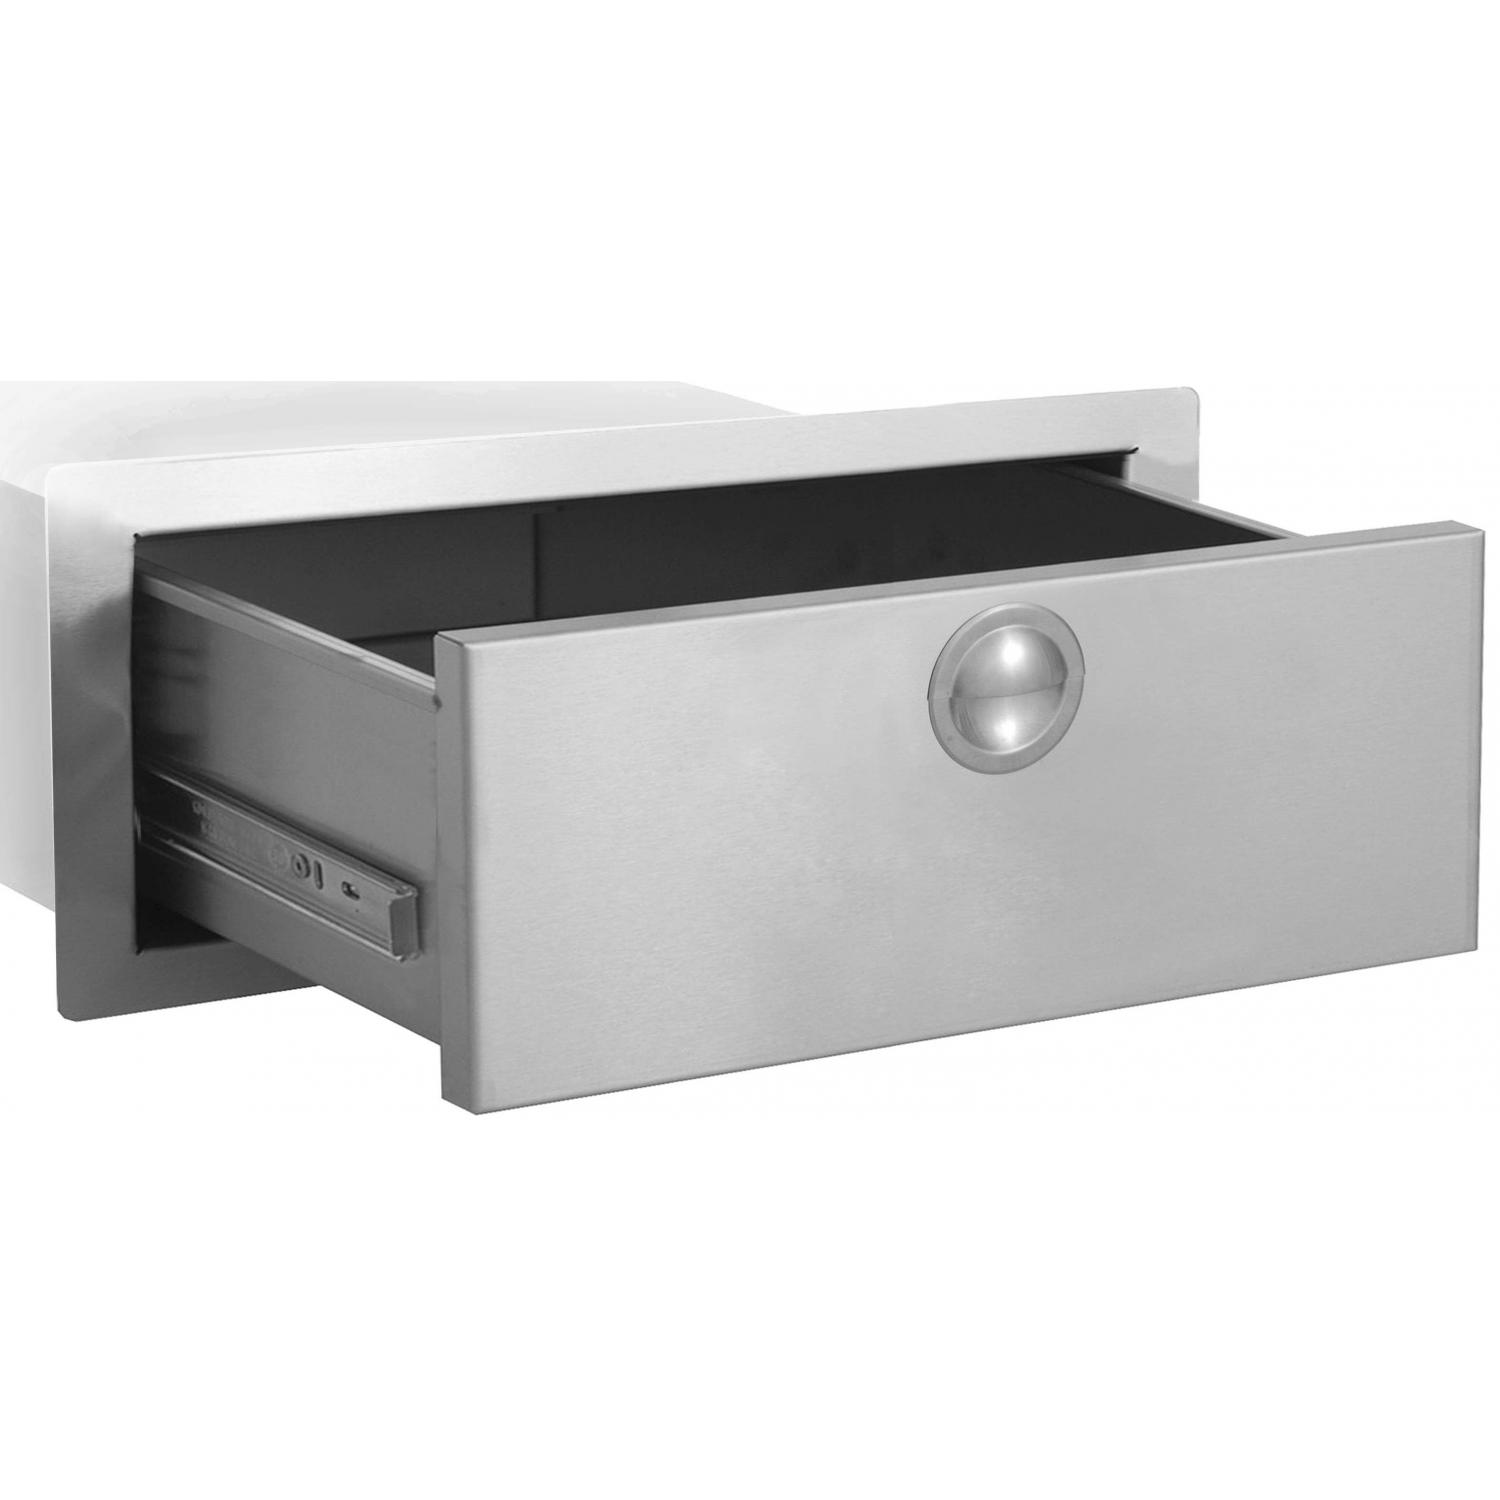 Bbqguys.com Portofino Series 36 Inch Stainless Steel Big Daddy Access Drawer